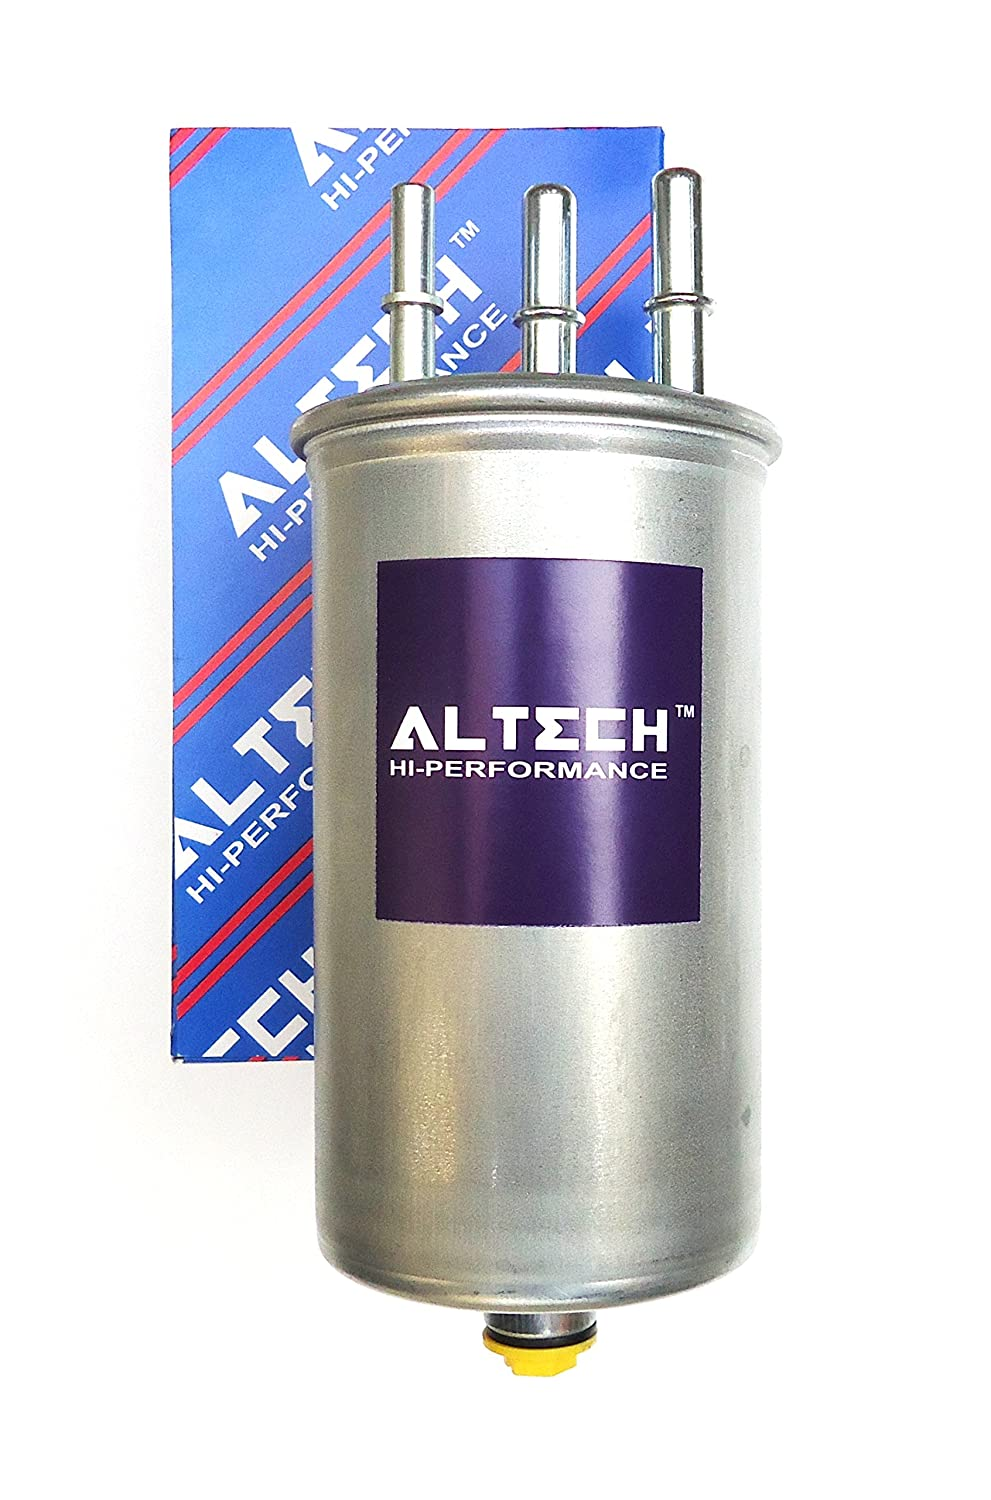 Fuel Filters Buy Online At Best Prices In India 2012 Hyundai Elantra Filter Altech Hi Performance Diesel For Renault Duster 2013